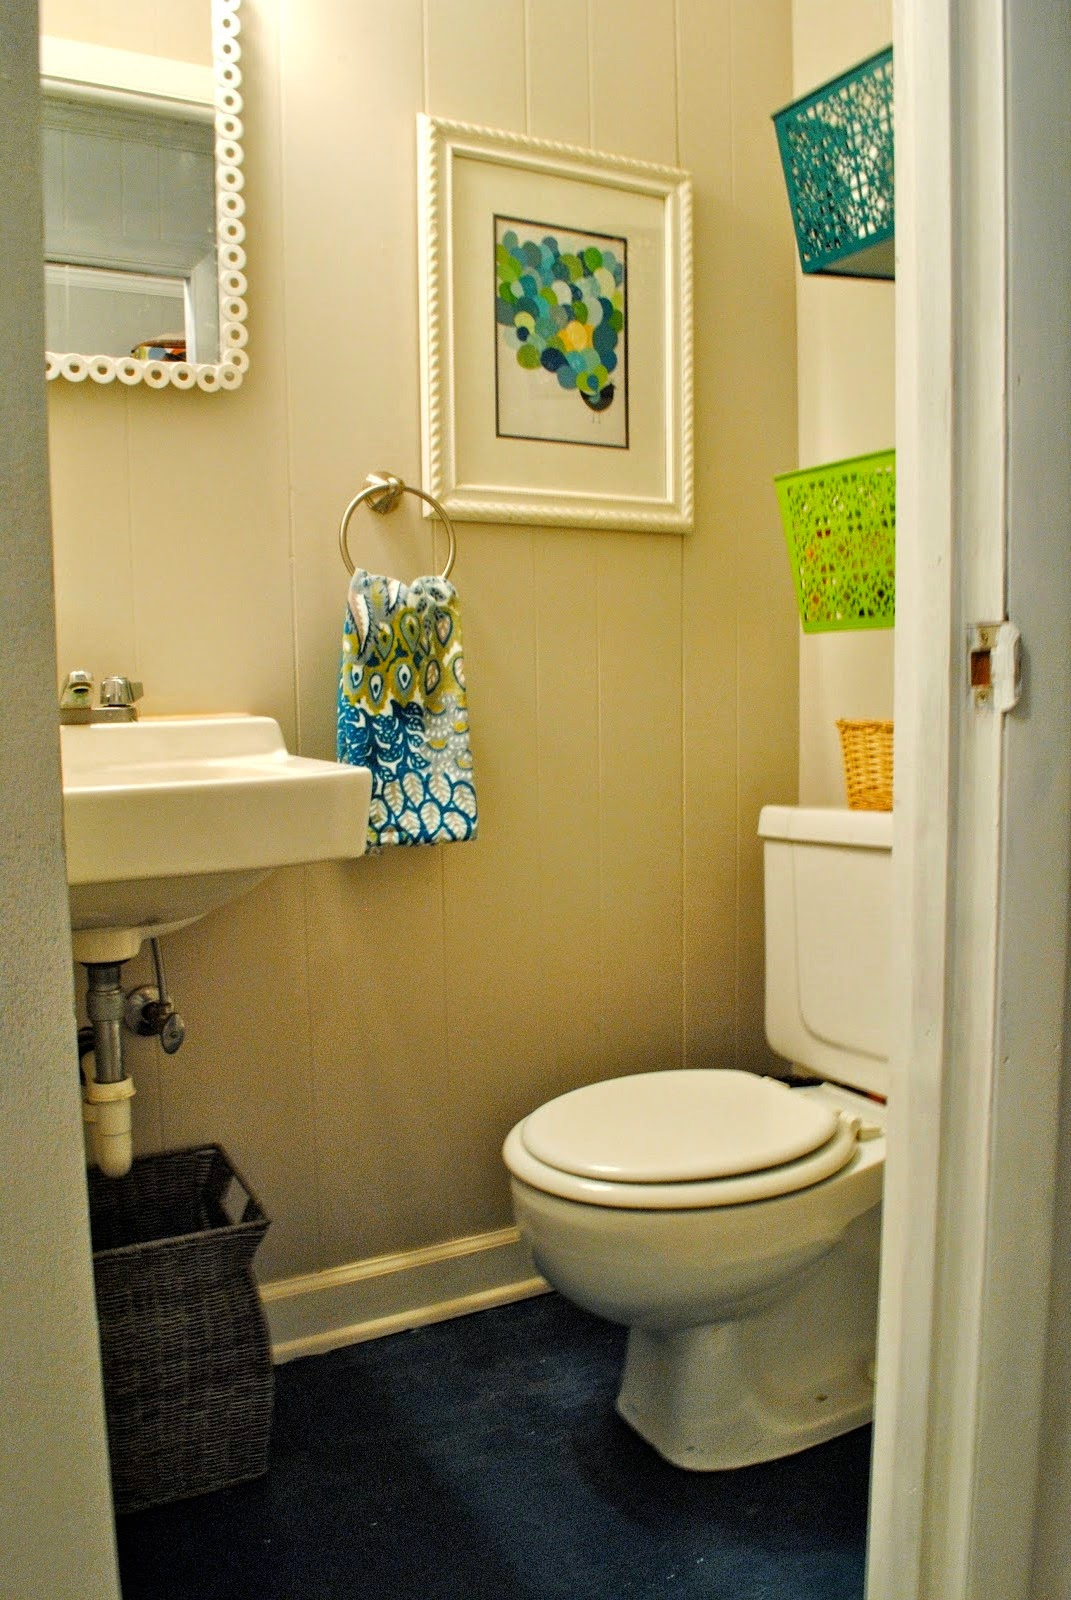 Decorating Ideas For Small Bathrooms Best Of Small Bathroom Decorating Ideas Image